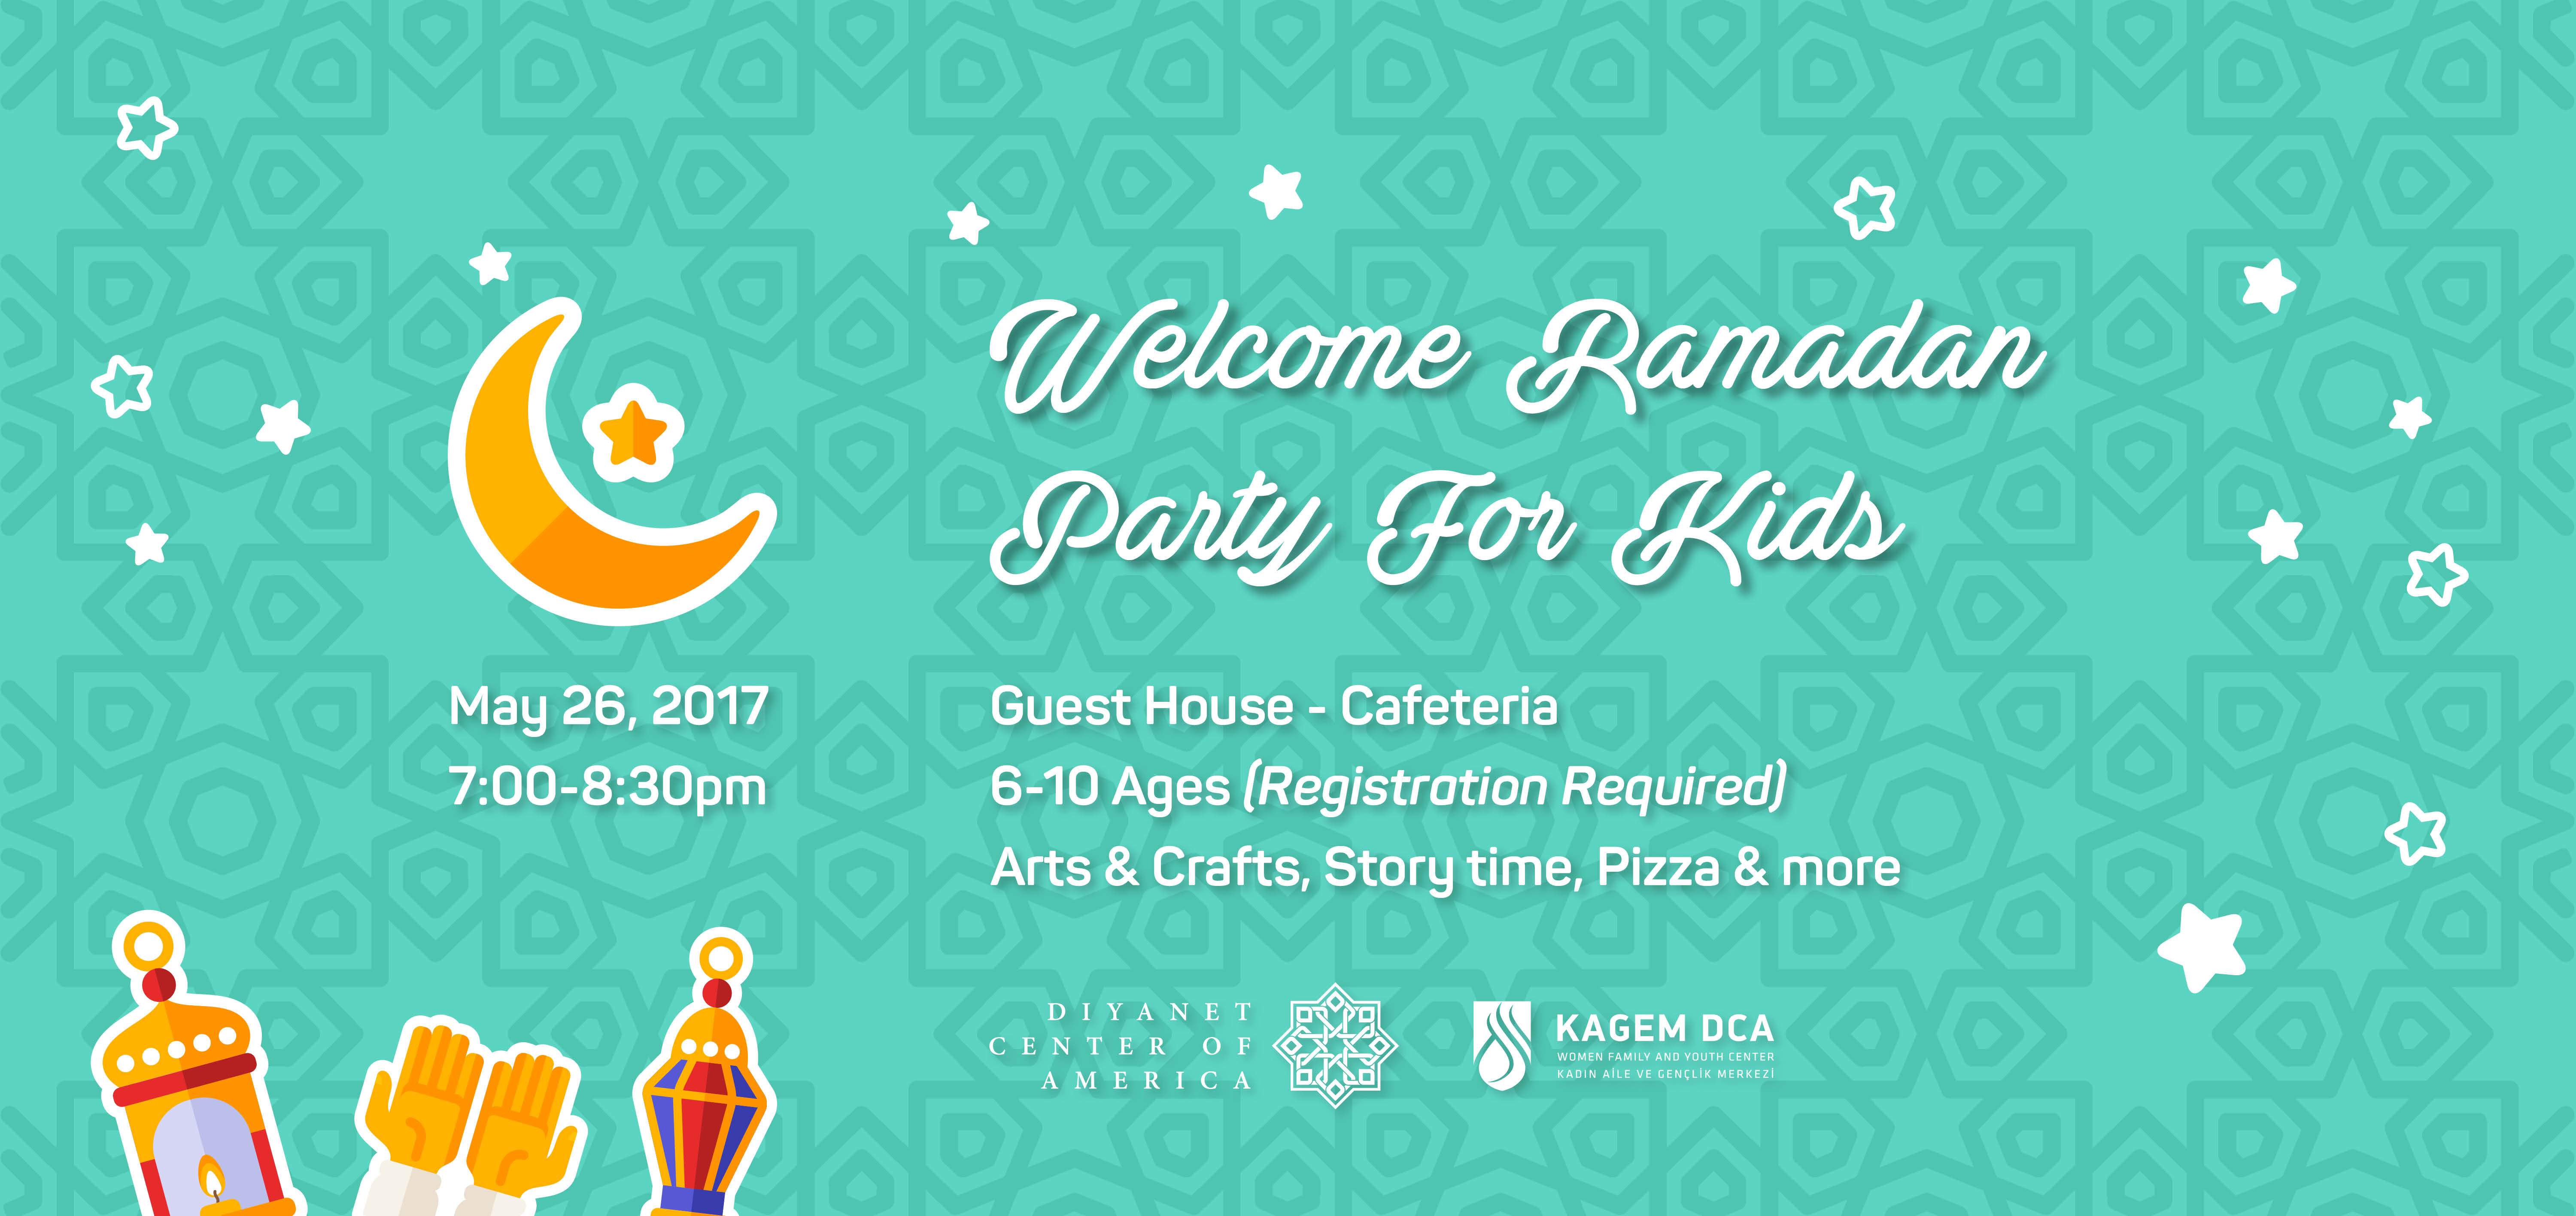 Ramadan Party - SOLD OUT